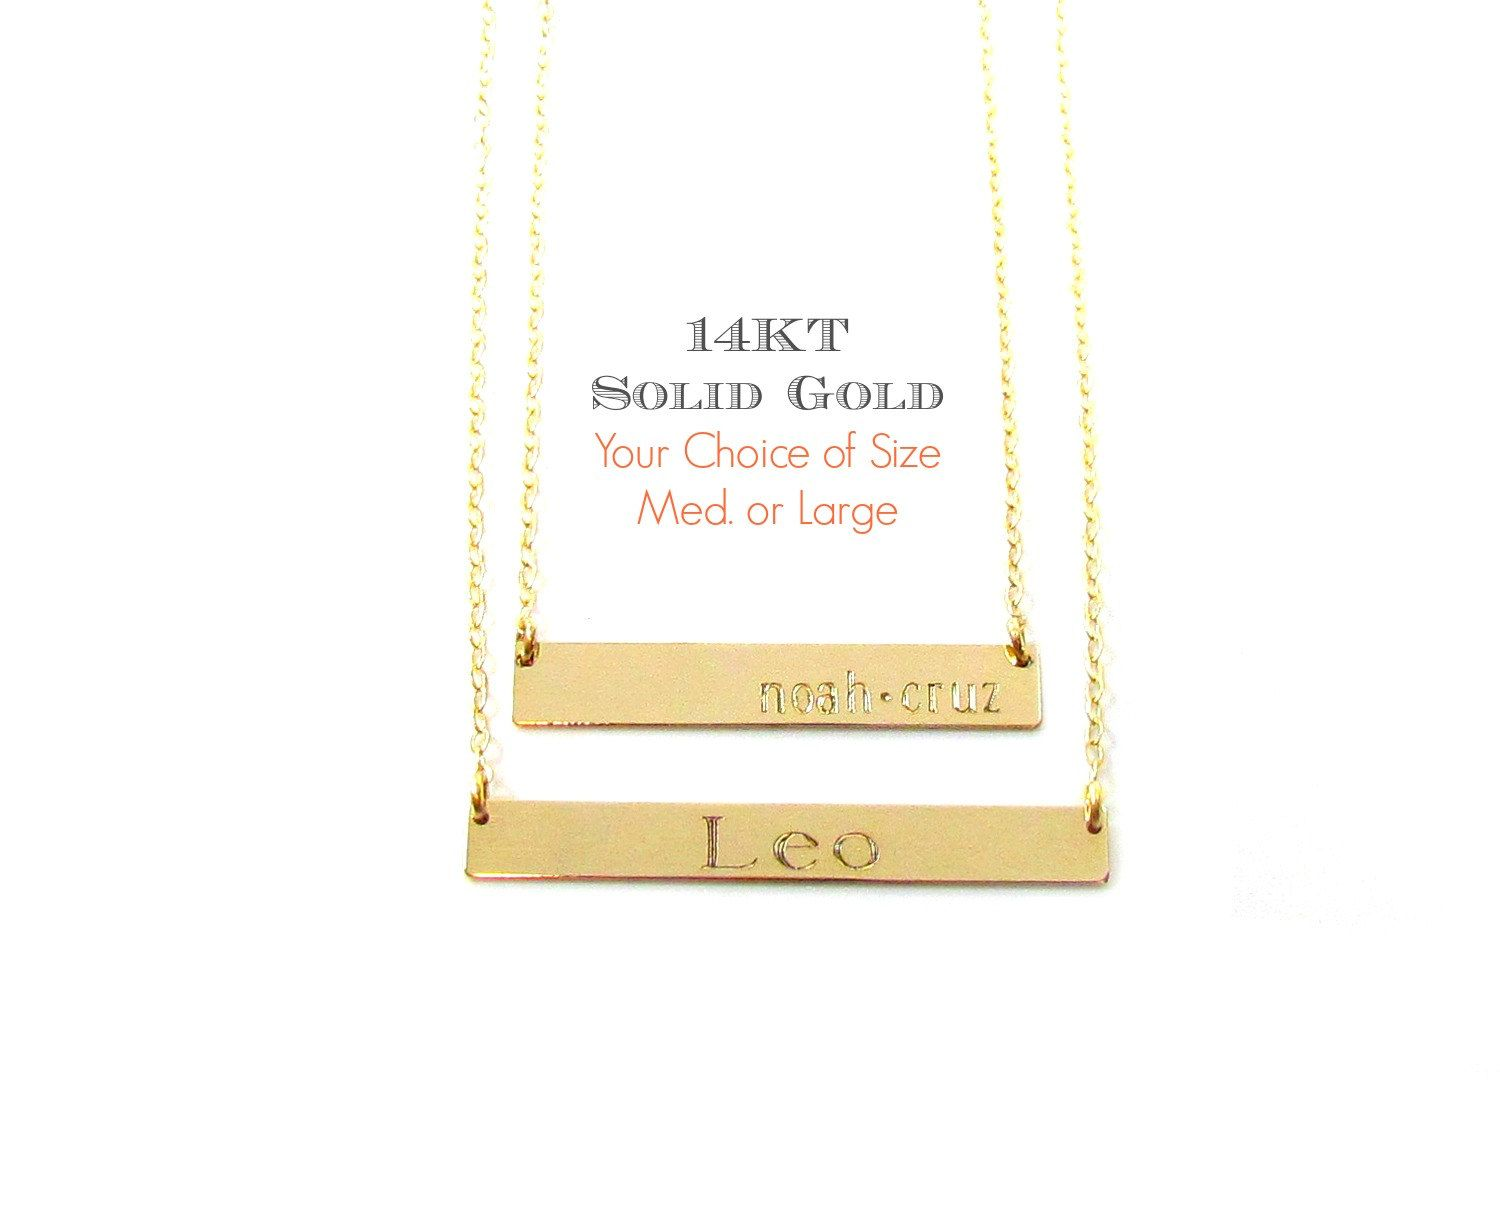 14KT Solid Gold Bar Necklace, Engraved Bar Necklace, Personalized Nameplate, Roman Numeral Necklace in Solid 14KT Yellow & White Gold